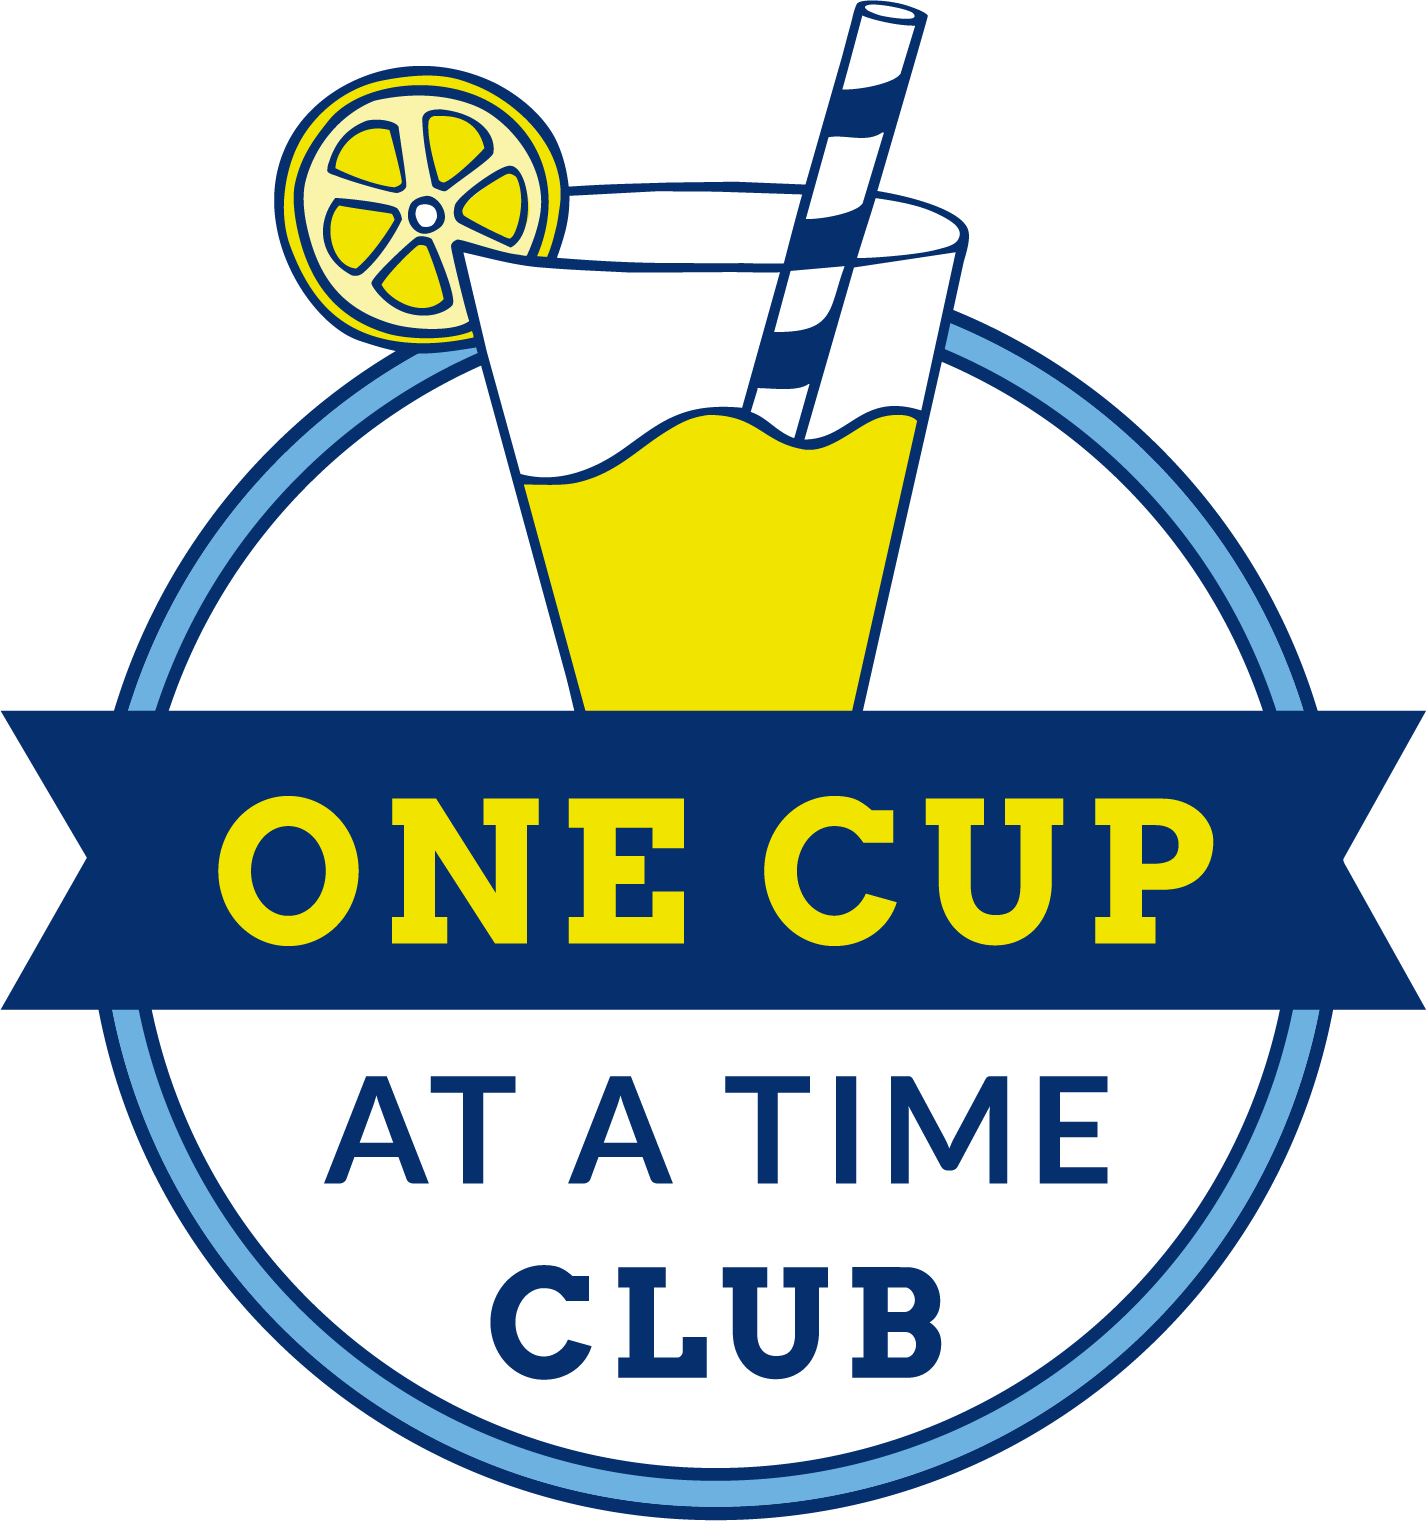 One Cup at a Time Club logo